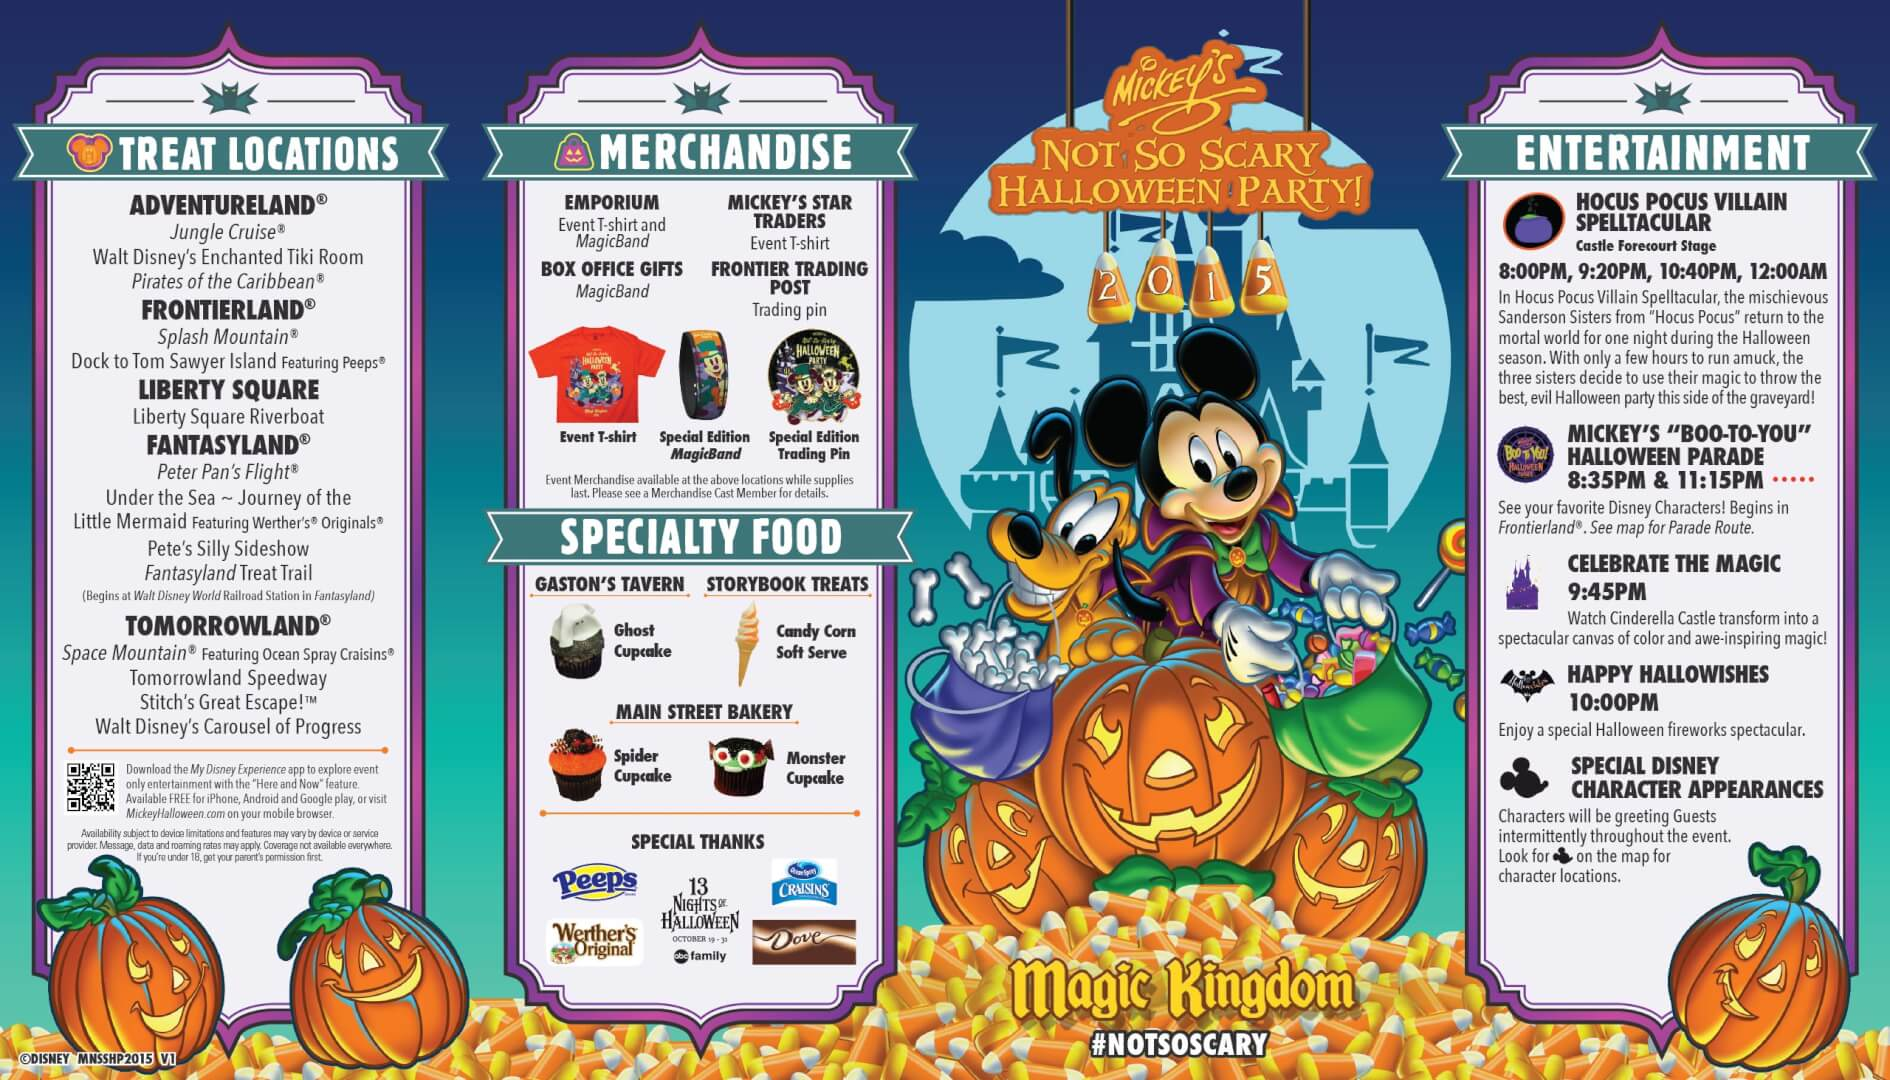 PHOTOS: Mickey's Not So Scary Halloween Party 2015 guide map ...